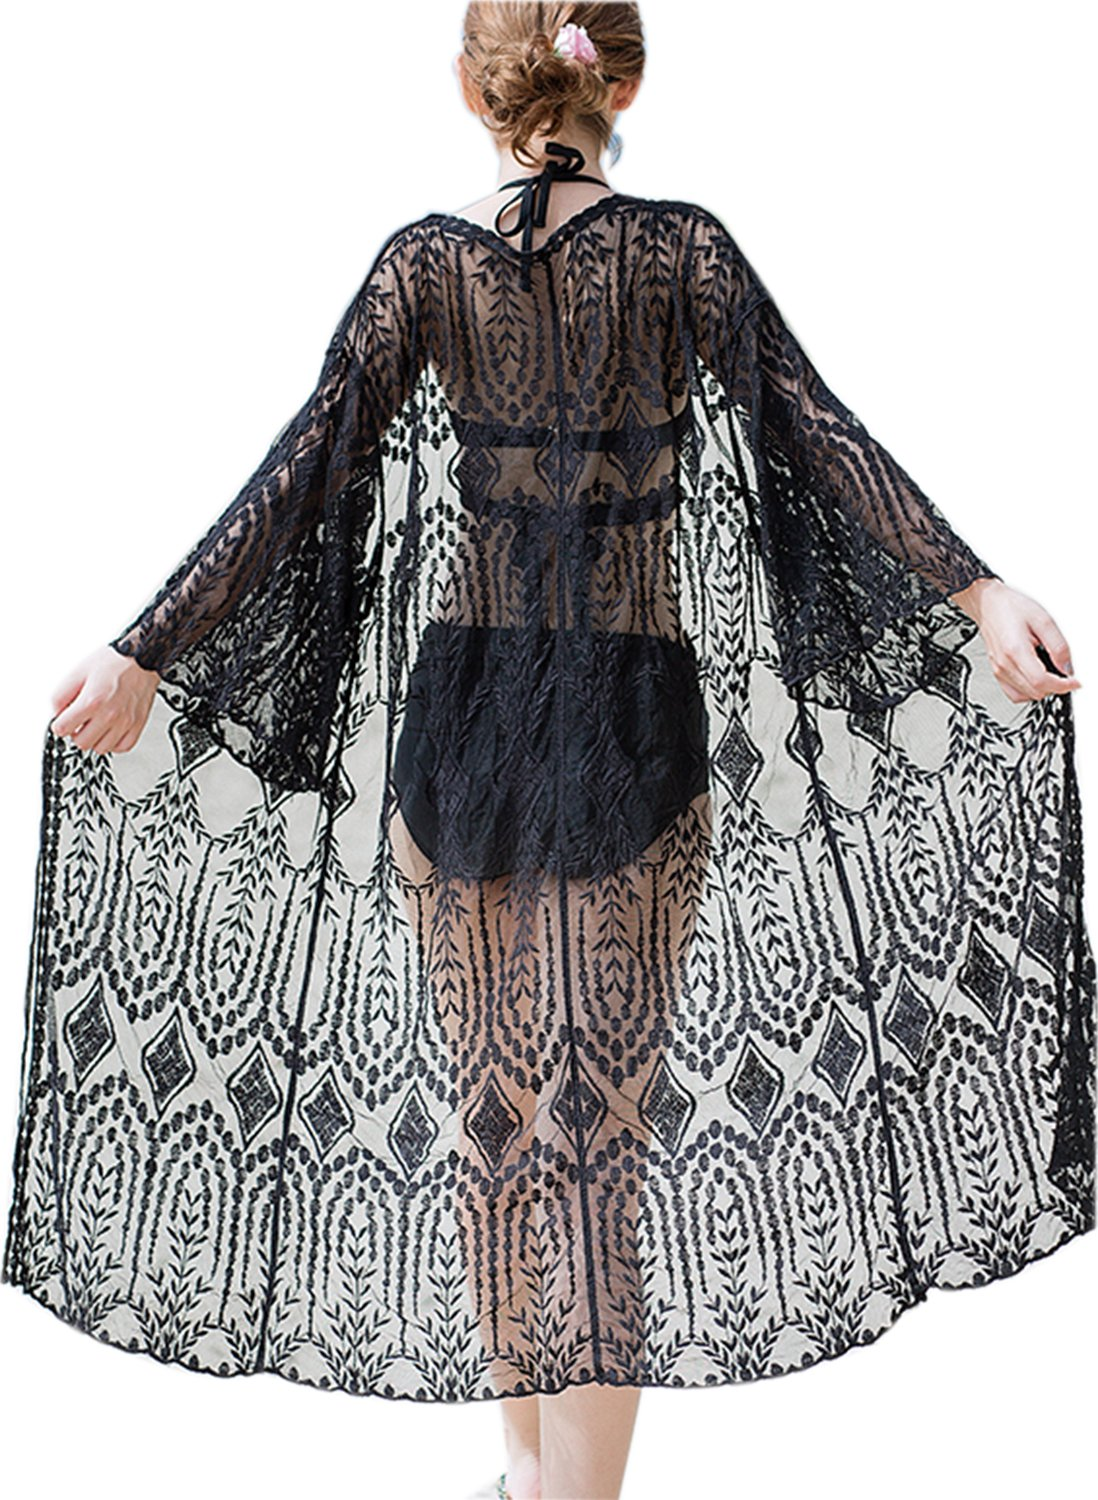 VenuStar Lace Jacket Kimonos Cardigan for Women Long Sleeve Cover up Embroidered Lace with tie(One Size, X-Black)